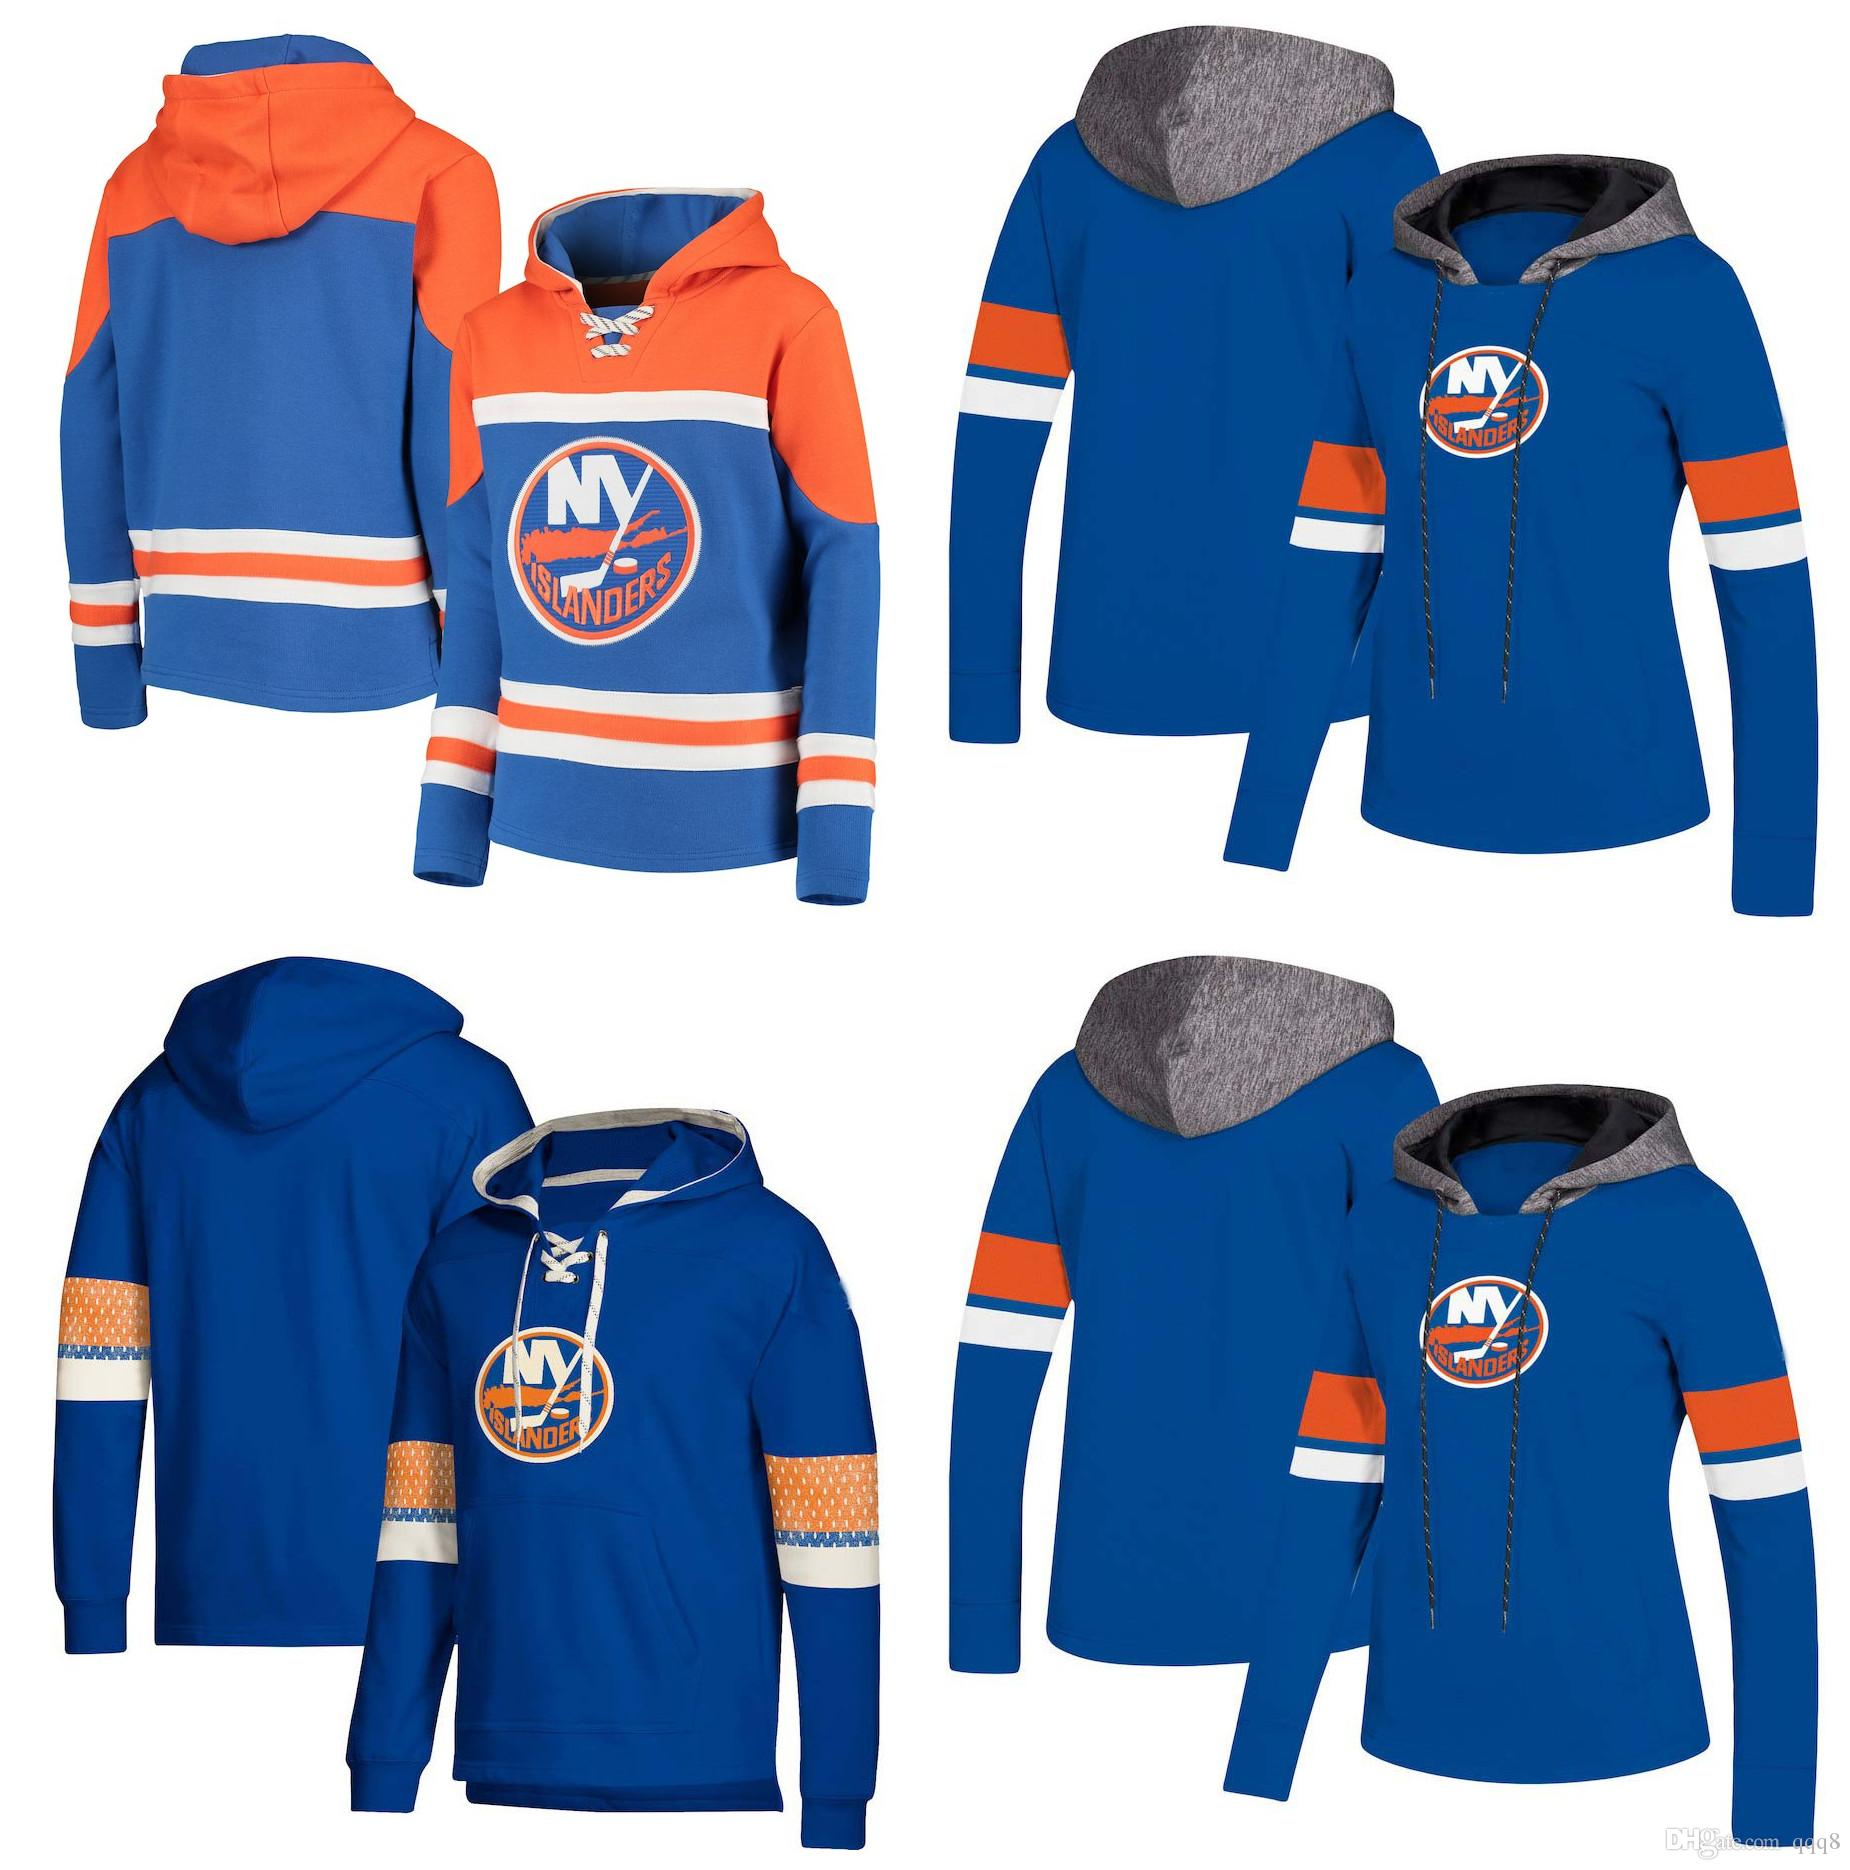 2019 New York Islanders Hoodie Jersey Mathew Barzal Boychuk Anders Lee Nick  Leddy Ryan Pulock Clutterbuck Bailey Nelson Ladd Hockey Pullover From Qqq8 7521a82b0e24